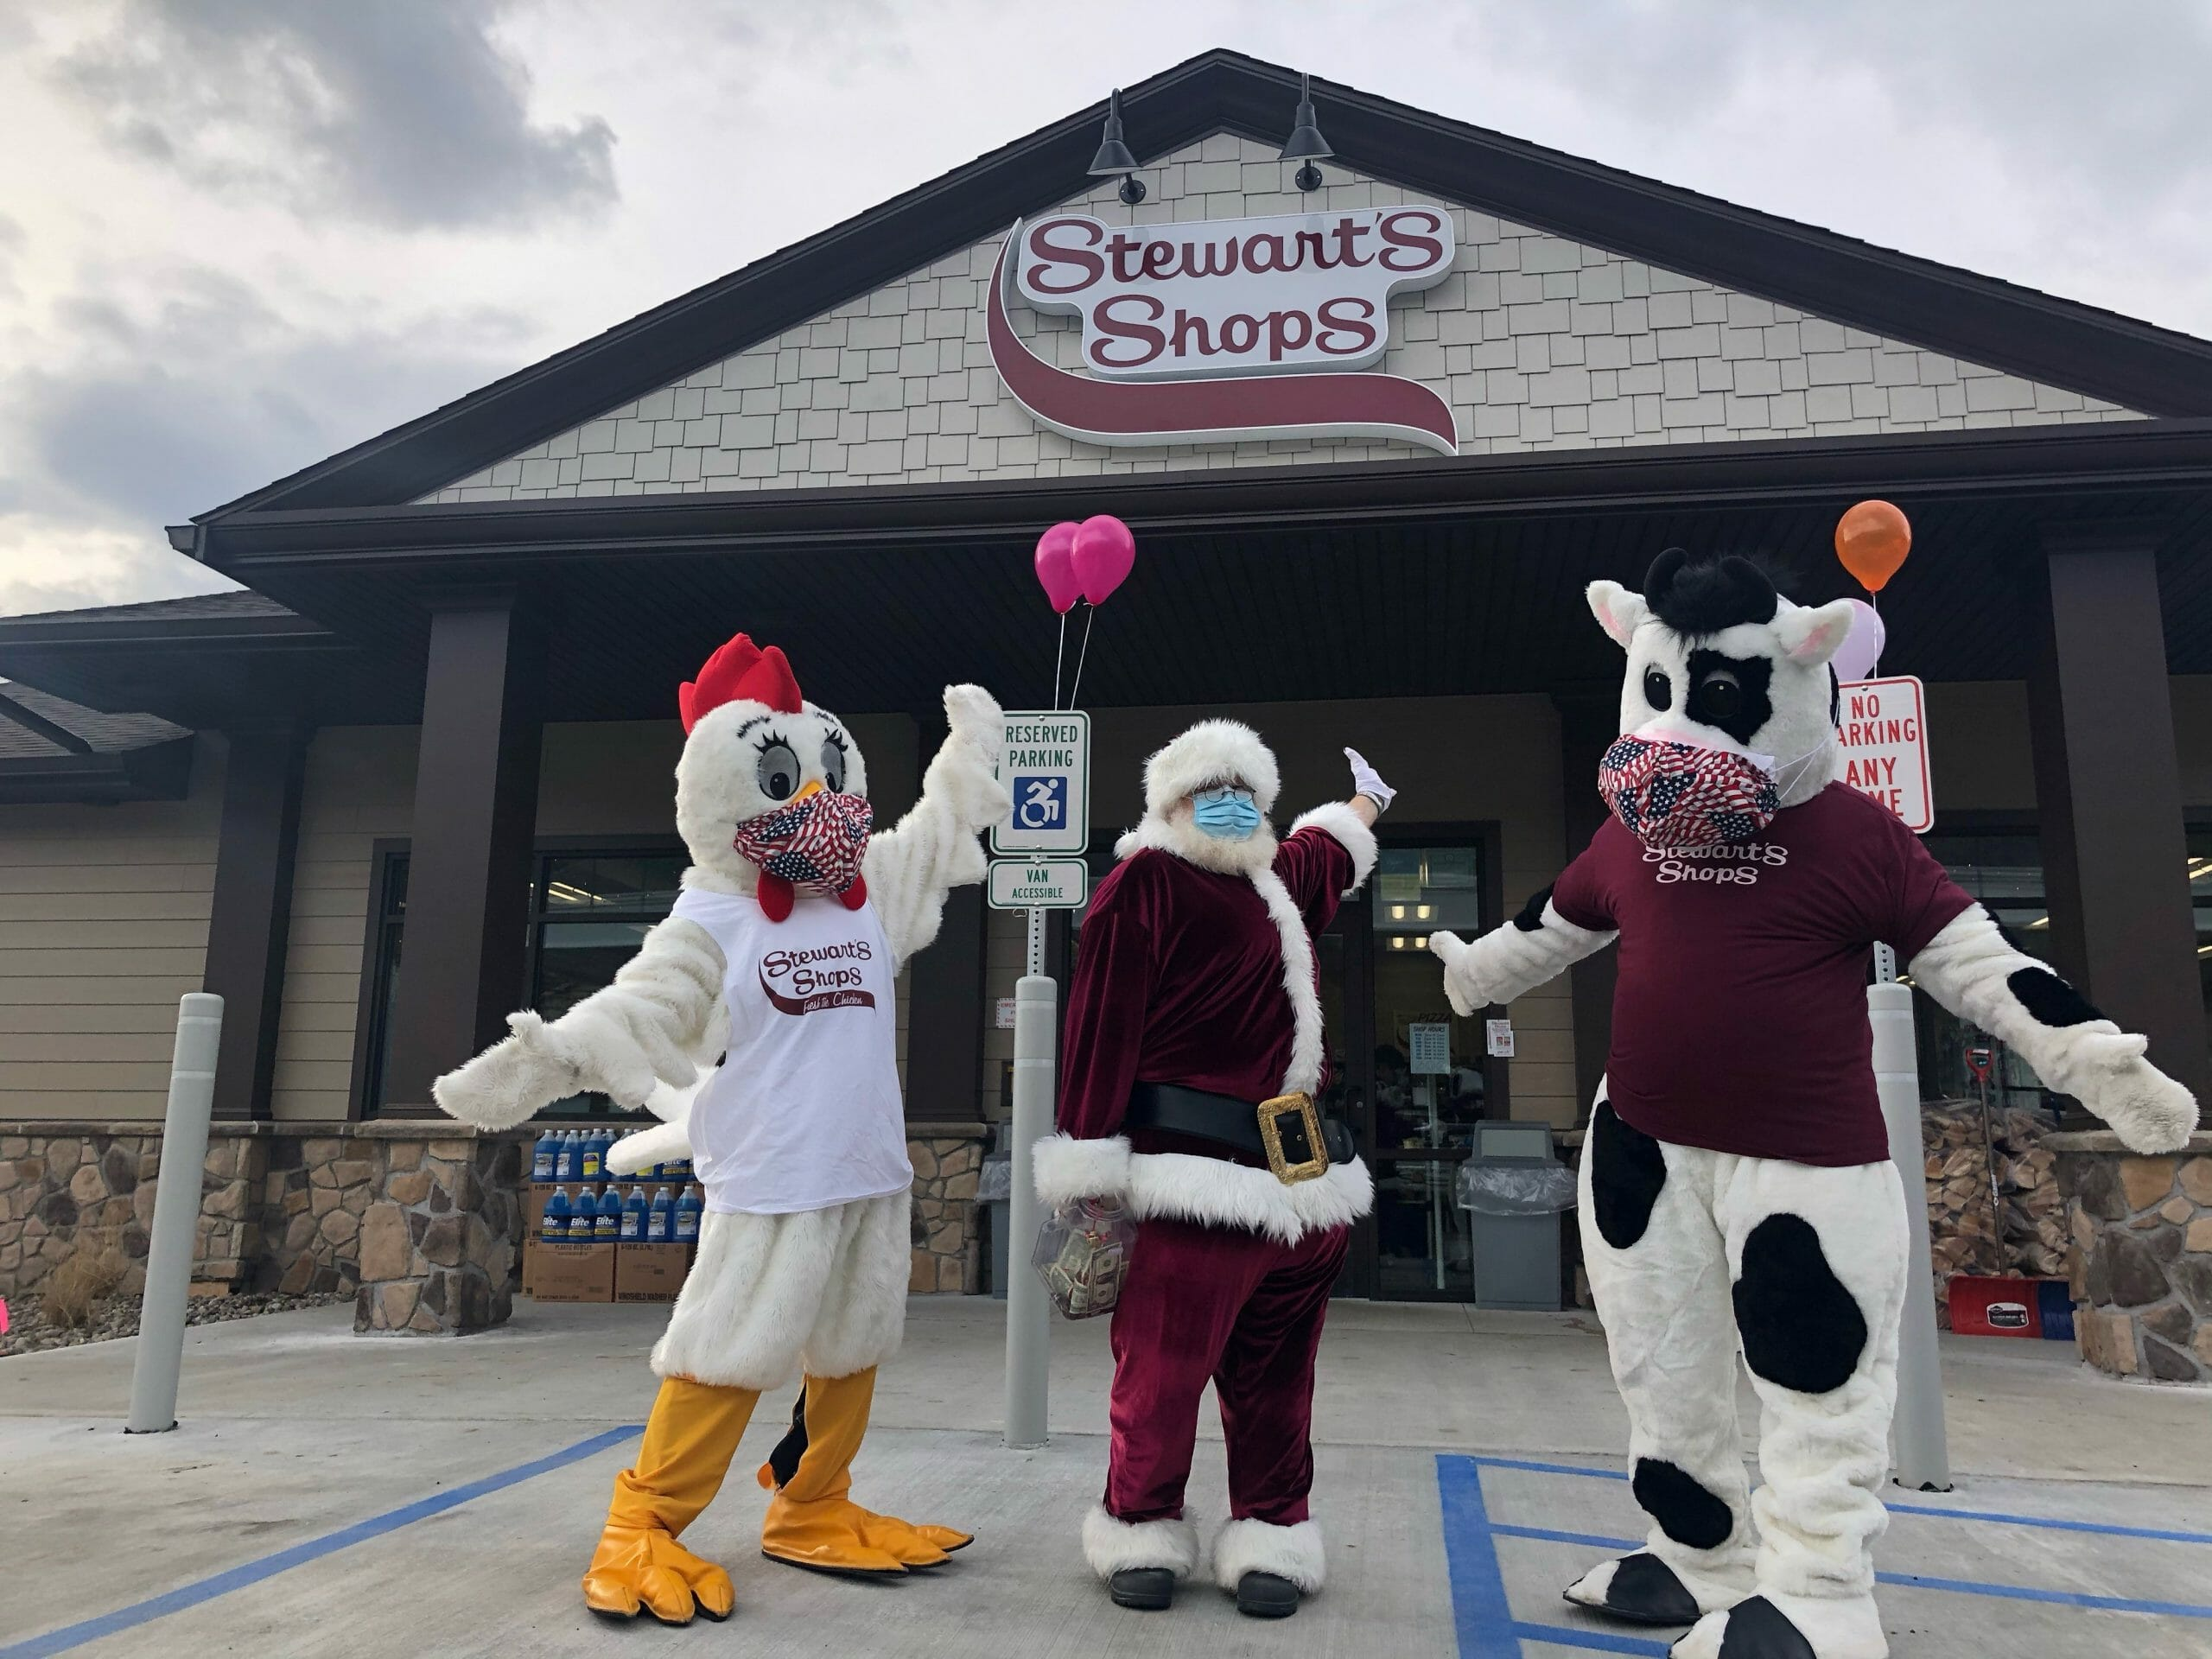 Chicken and Cow mascots with Santa